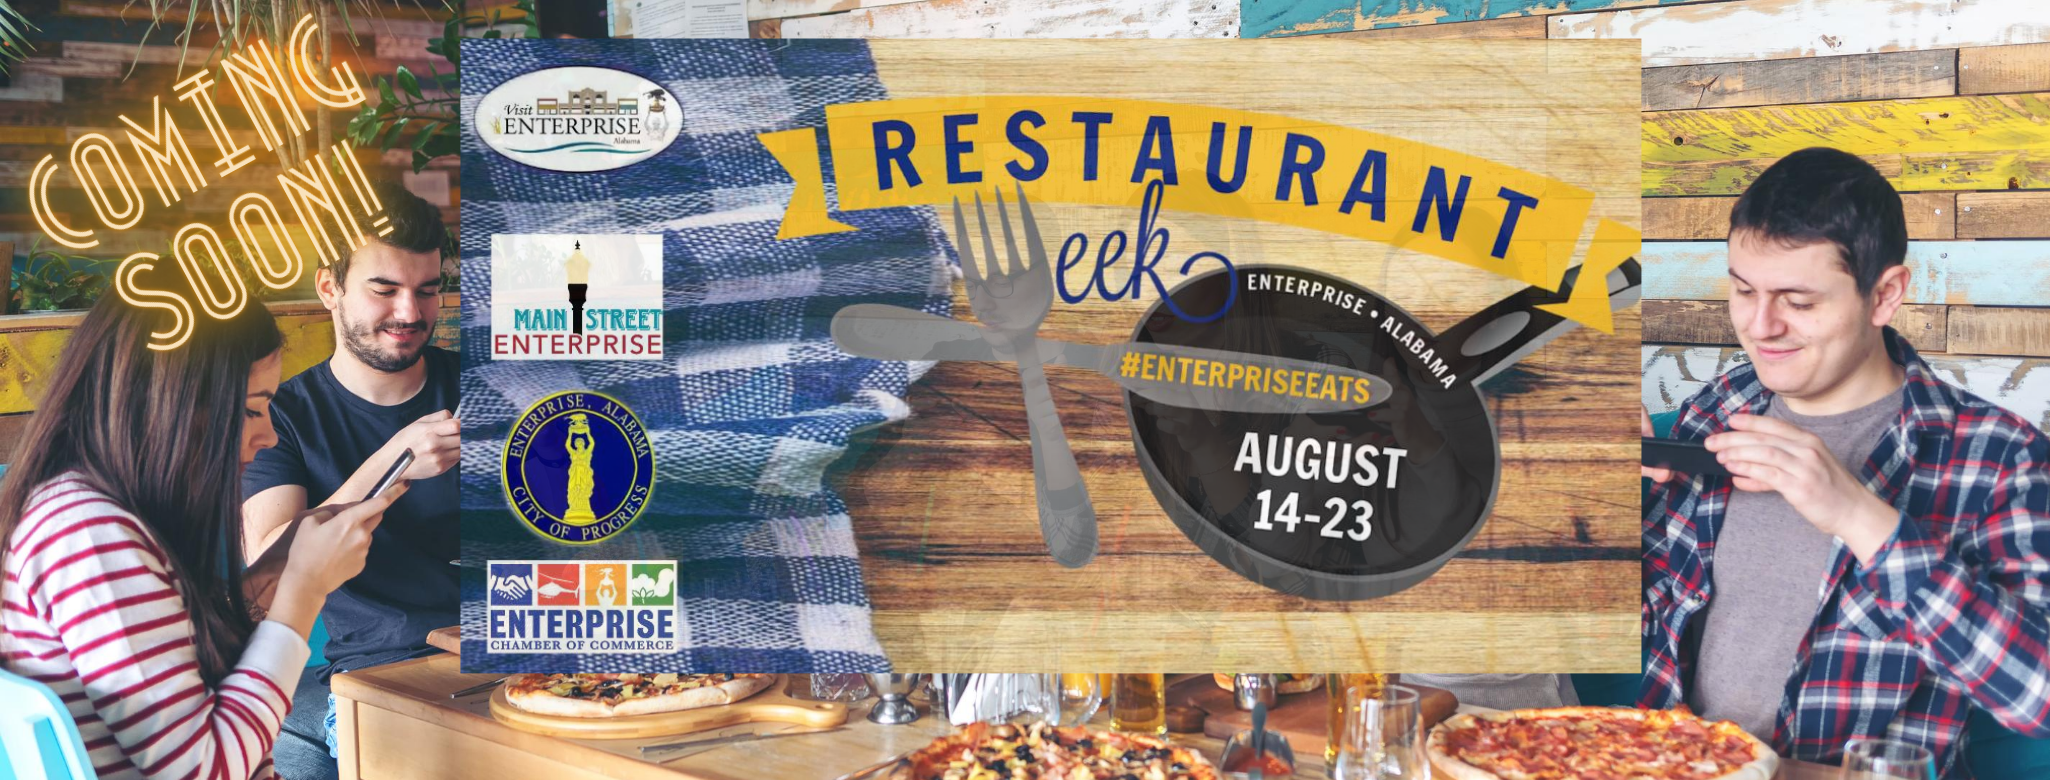 Restaurant Week FB Cover